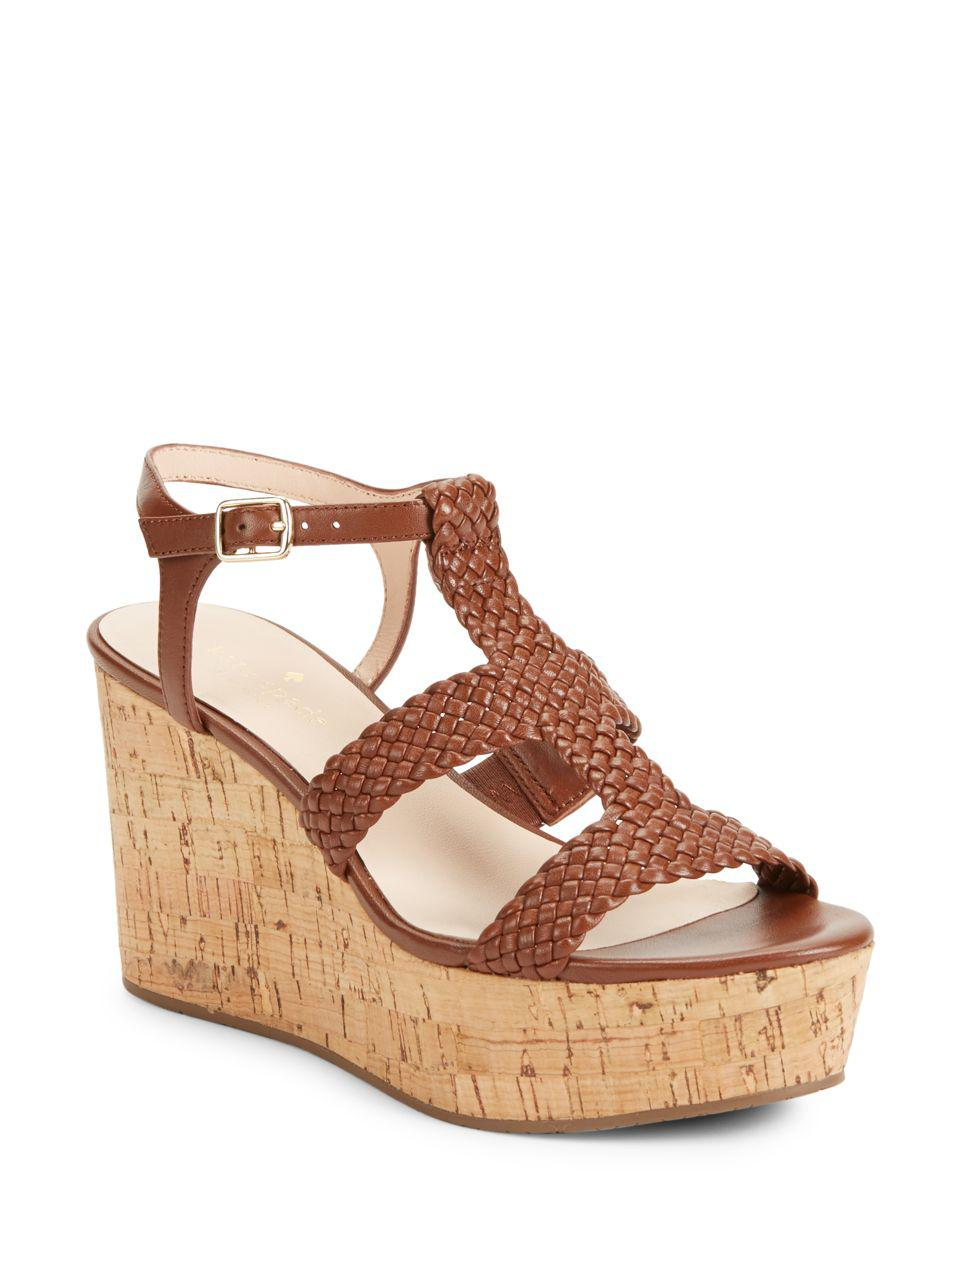 795c39bad7e3 Lyst - Kate Spade Tianna Woven Leather Cork Platform Wedge Sandals ...